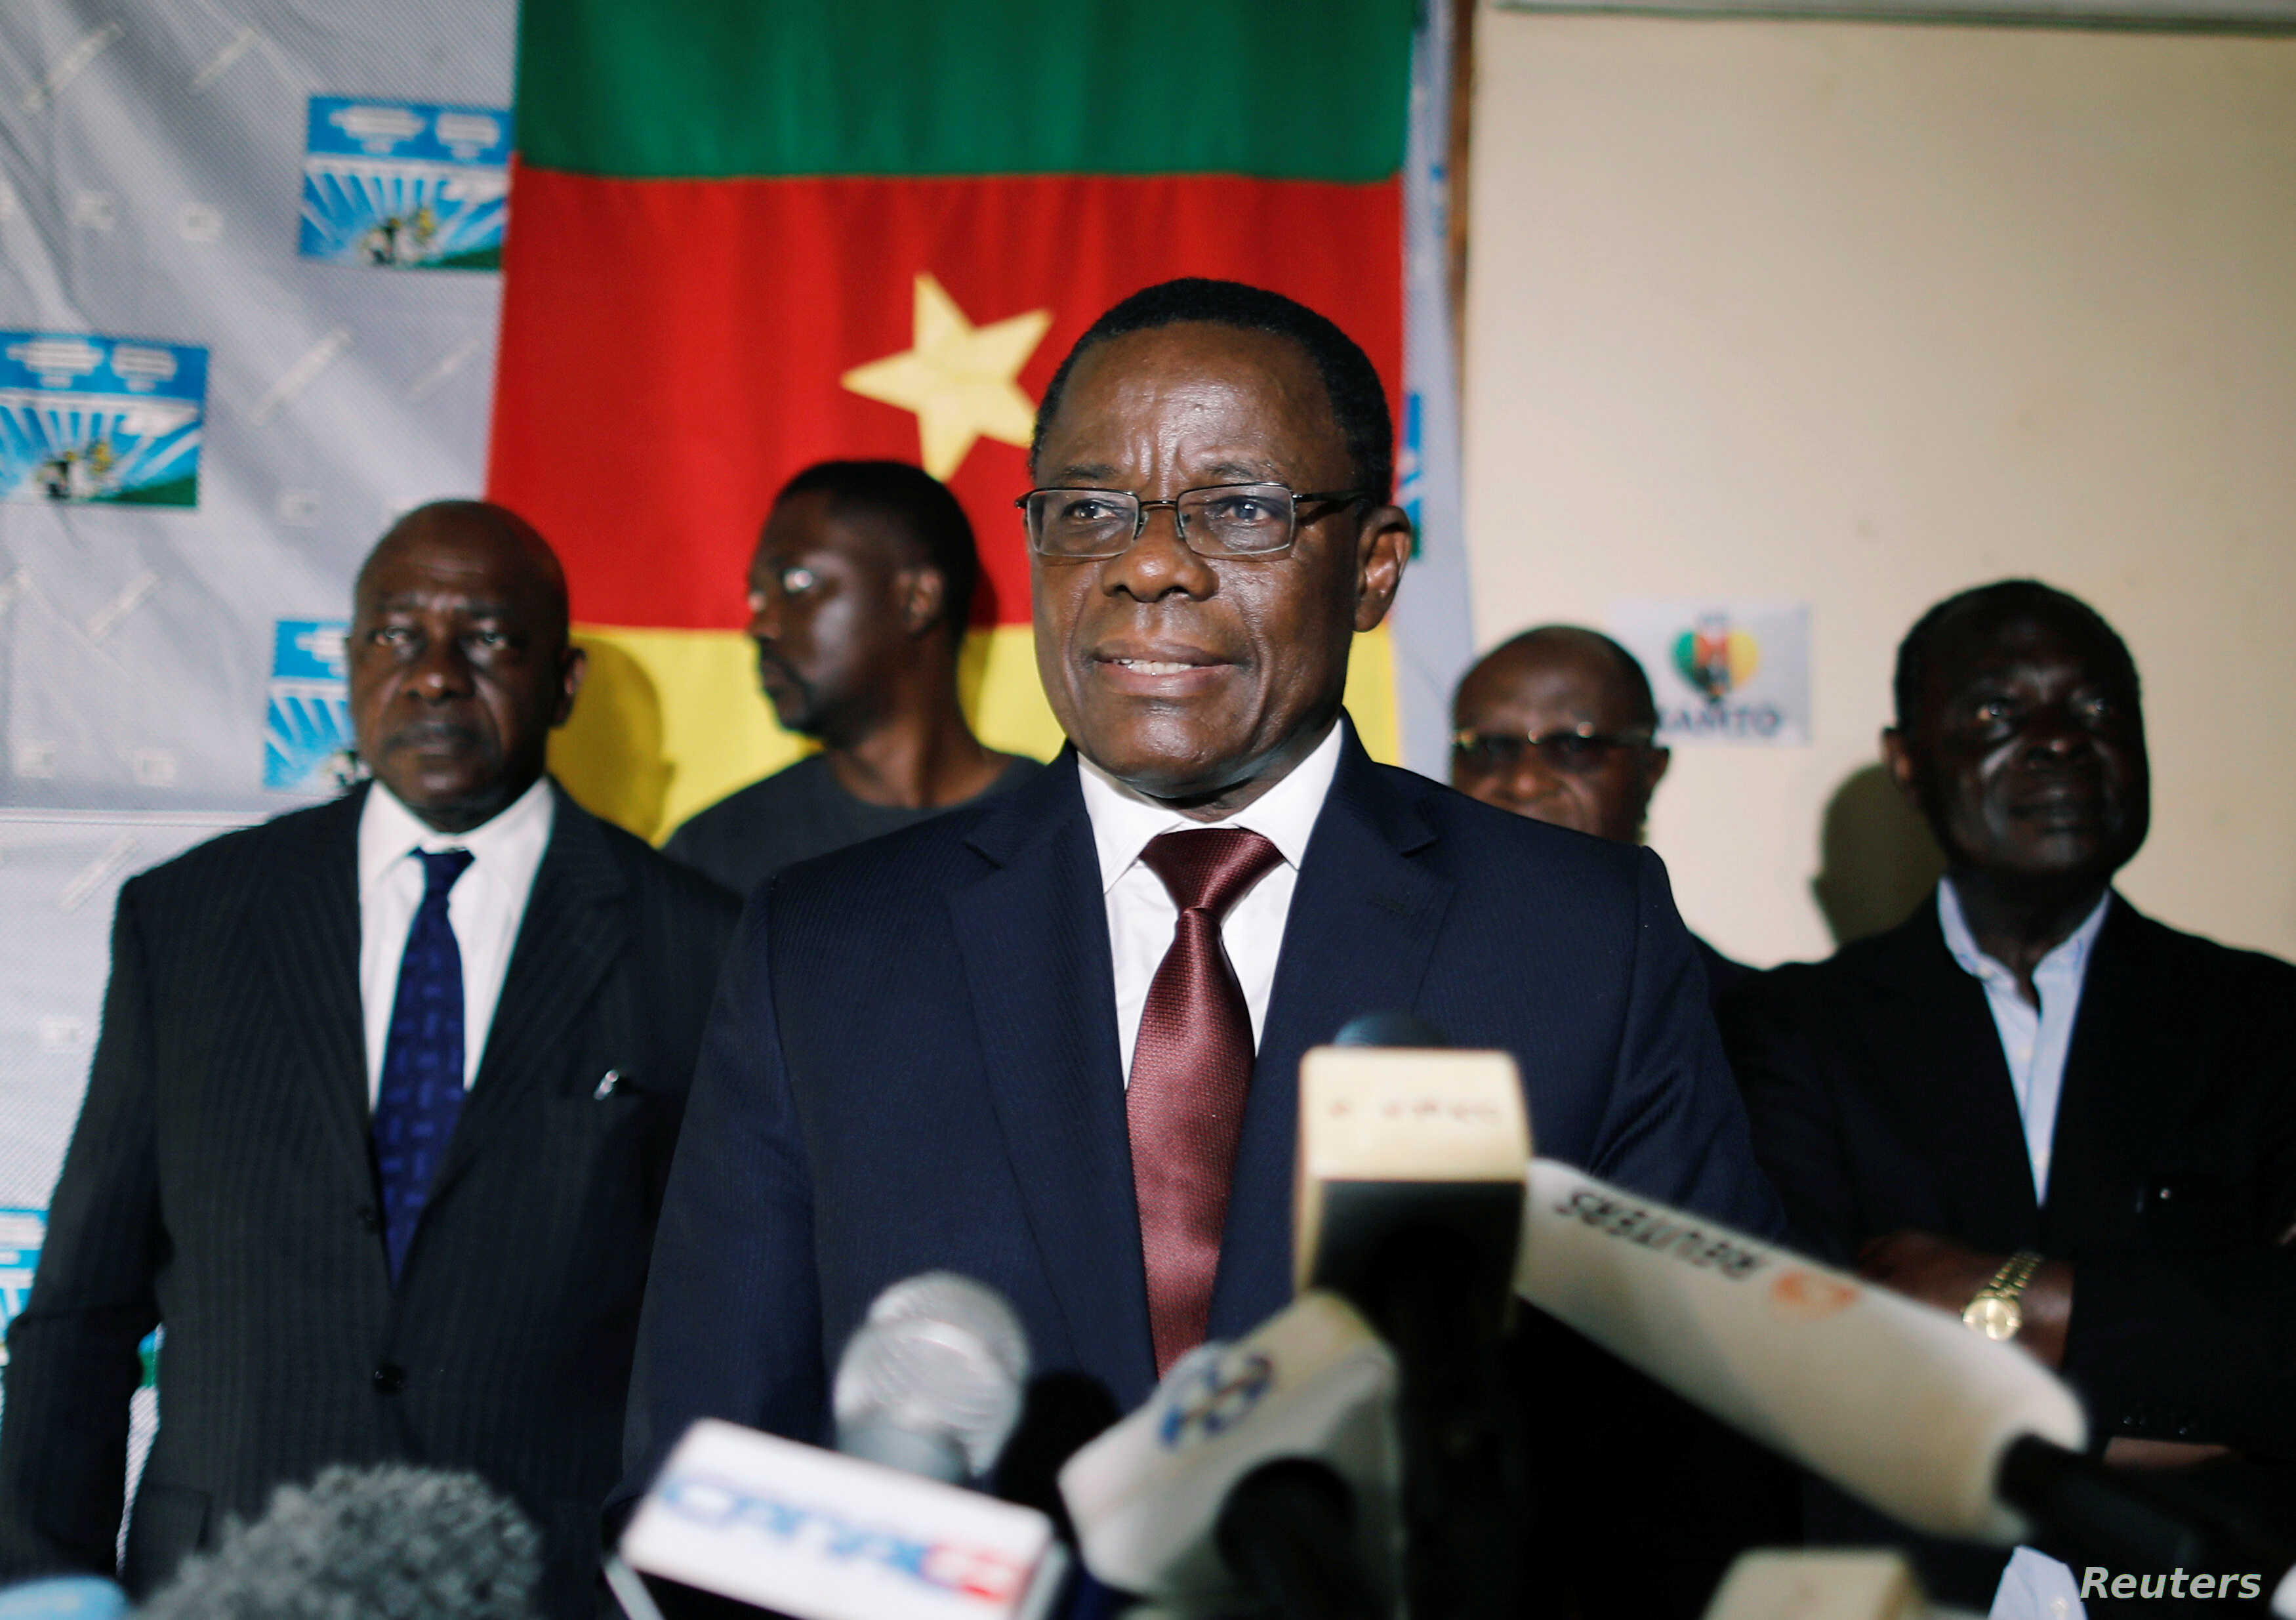 Maurice Kamto, a presidential candidate of Renaissance Movement (MRC), reacts as he holds a news conference at his headquarter in Yaounde, Cameroon, Oct. 8, 2018.